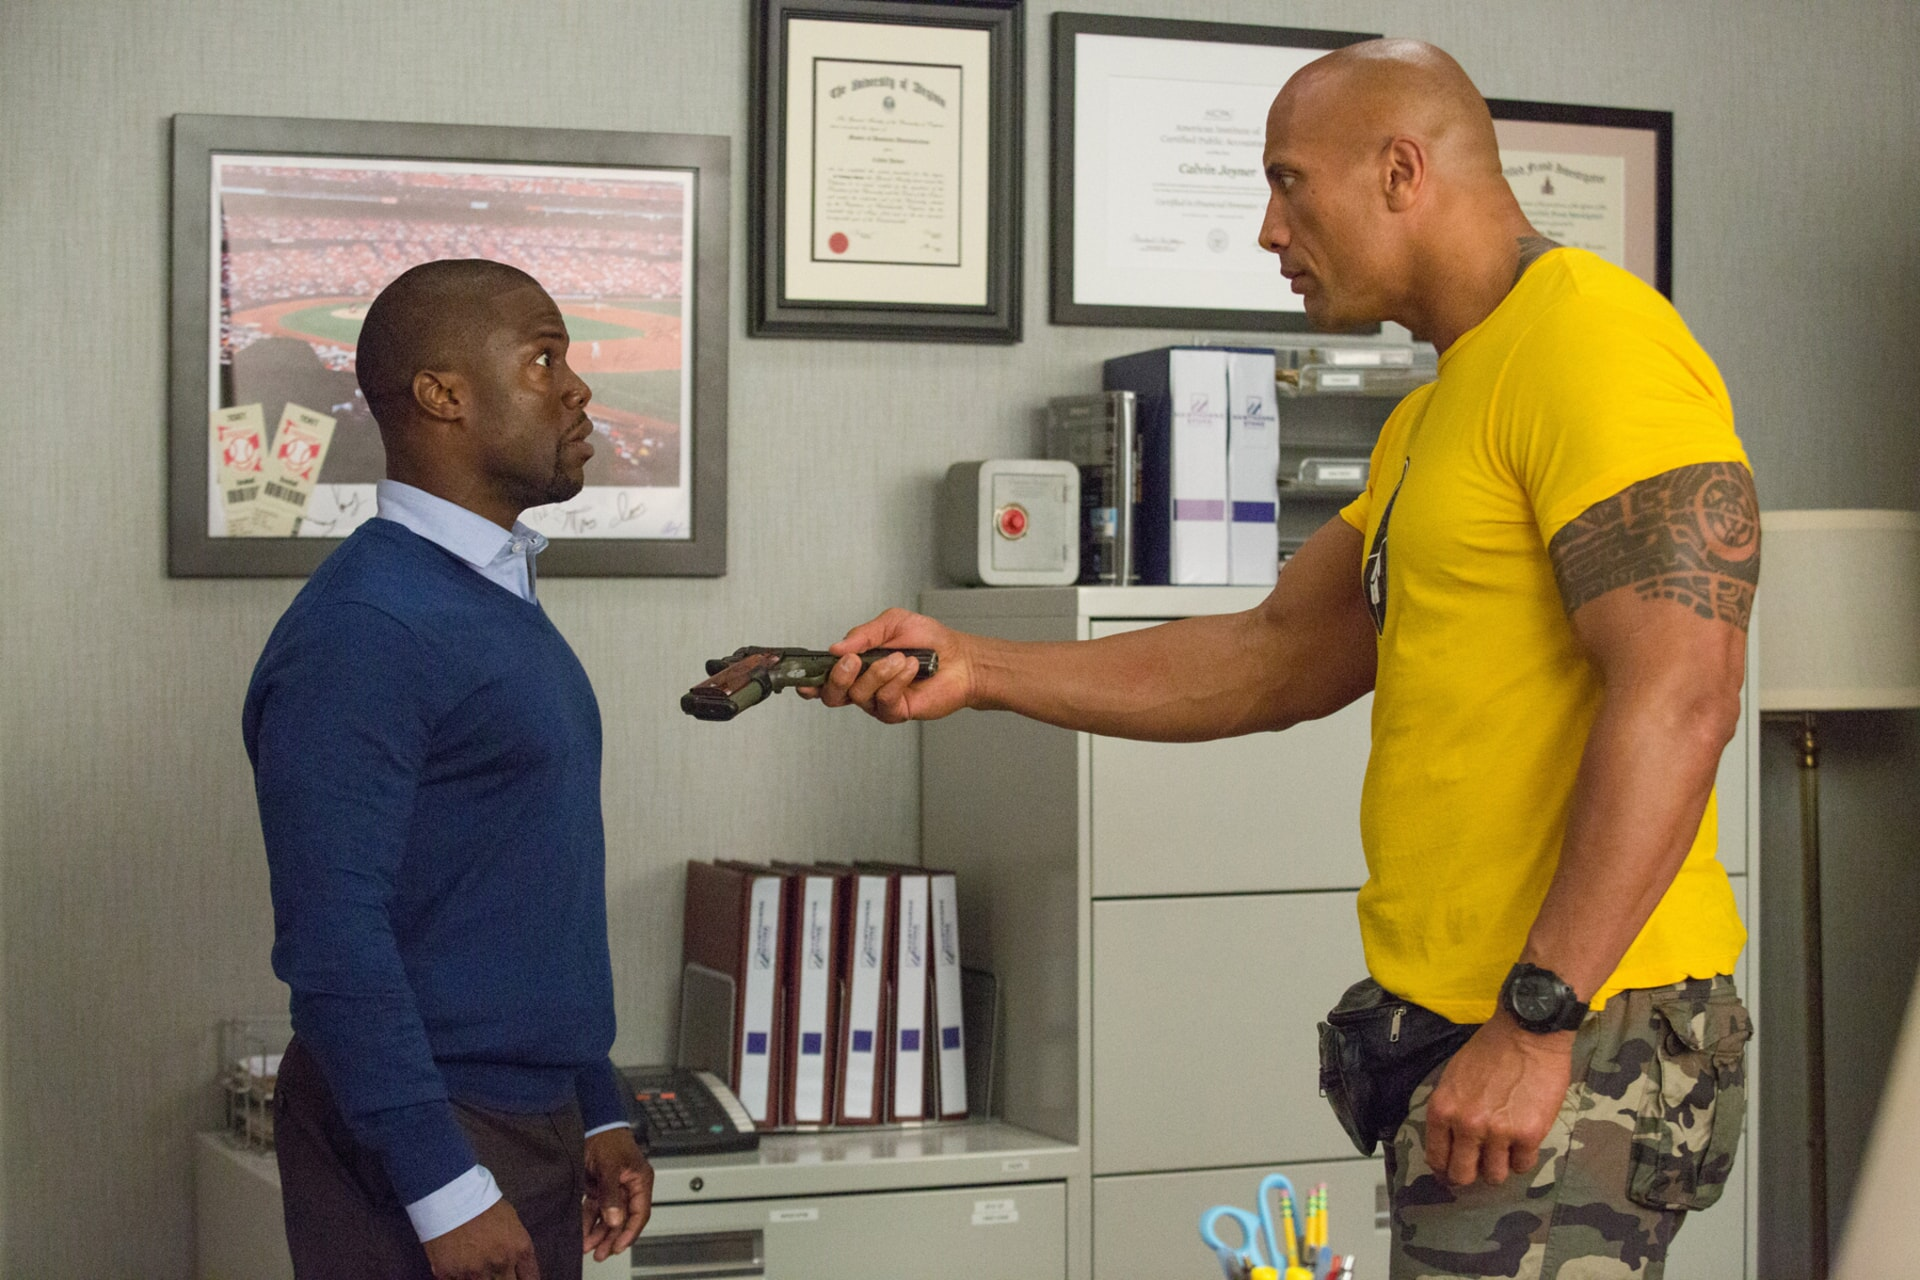 KEVIN HART as Calvin and DWAYNE JOHNSON as Bob handing over a gun